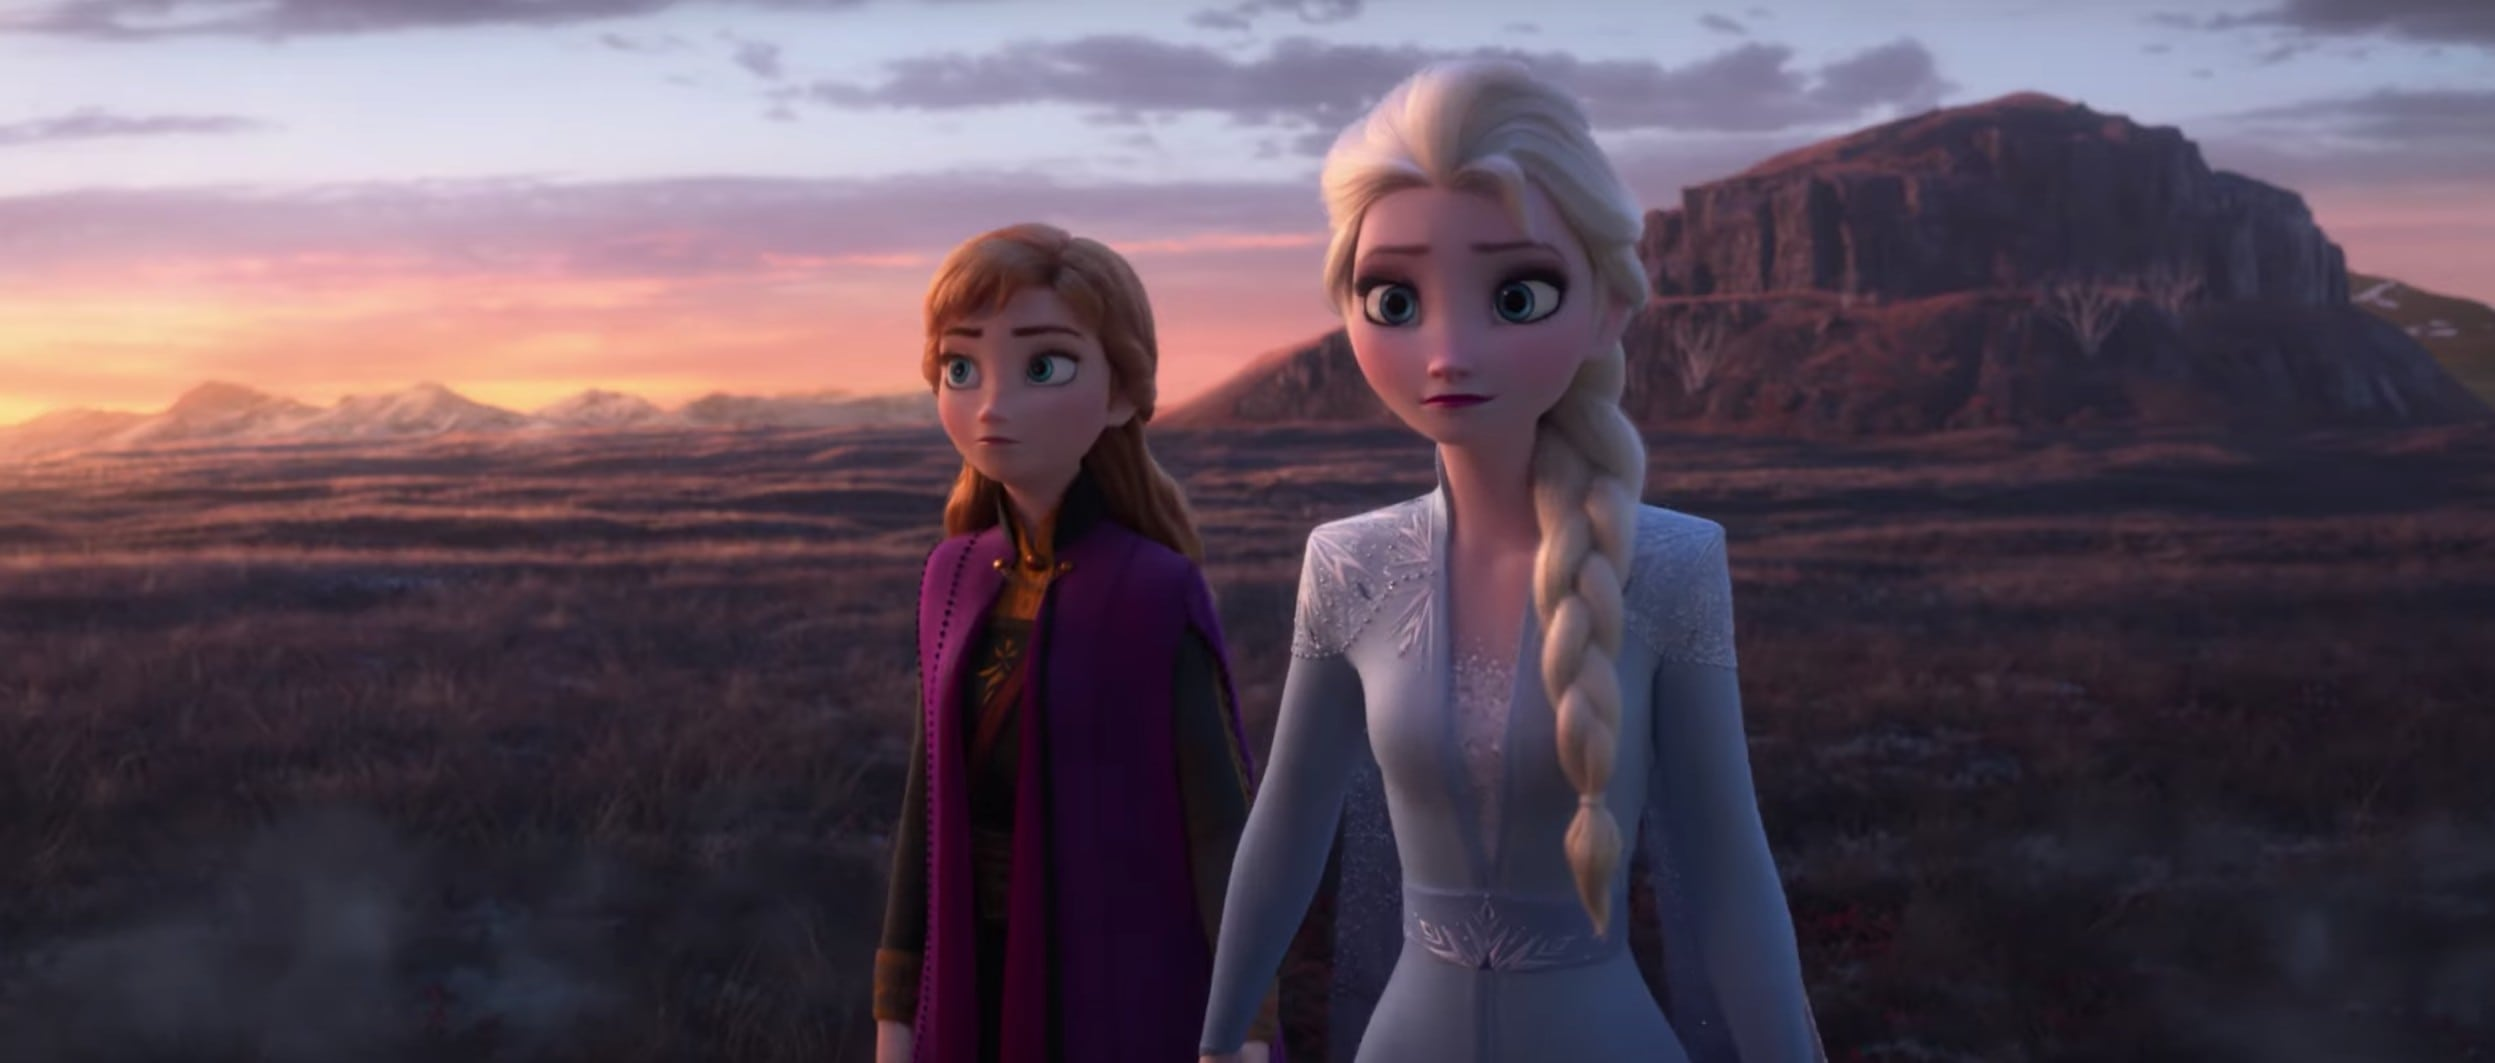 Screen Shot 2019 06 11 at 9.10.59 PM - Frozen 2 : Todo lo que necesitas saber